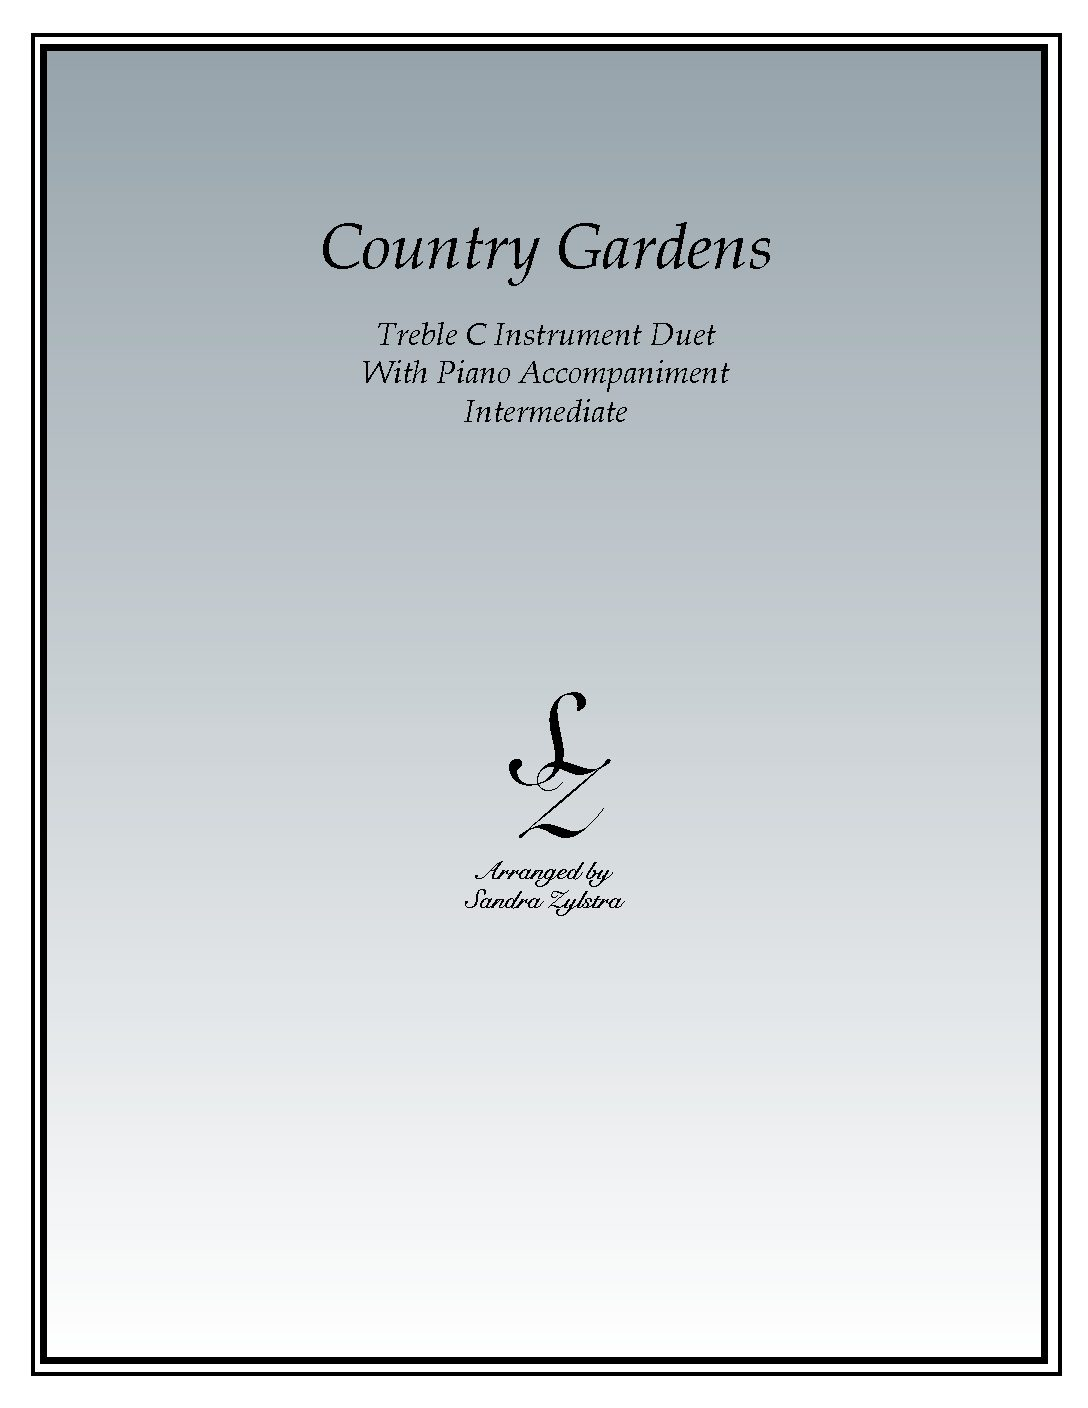 Country Gardens – Instrument Duet & Piano Accompaniment